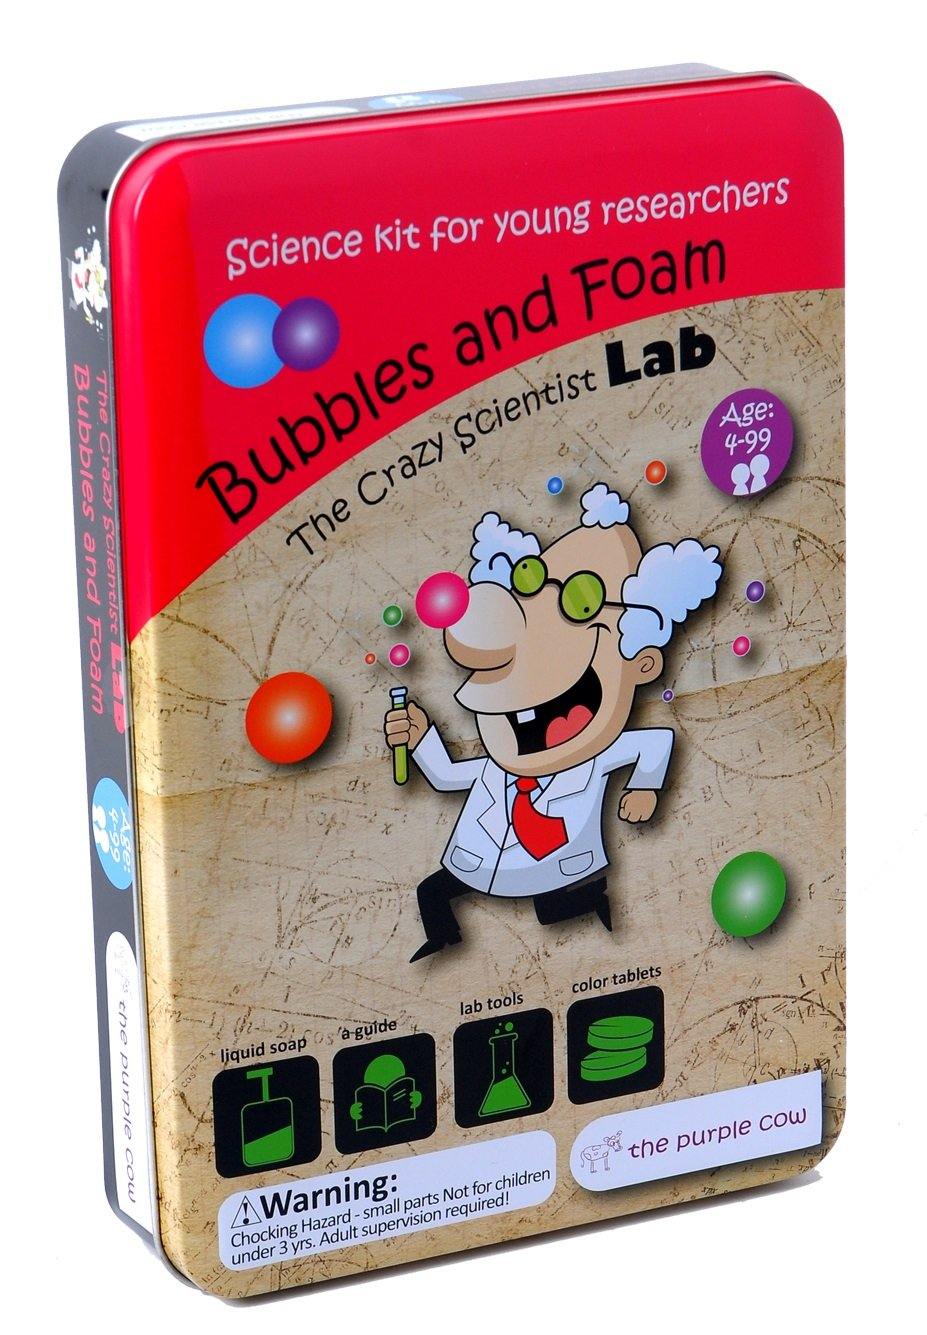 The Purple Cow Crazy Scientist Bubbles and Foam - Science Kits for Young Researchers